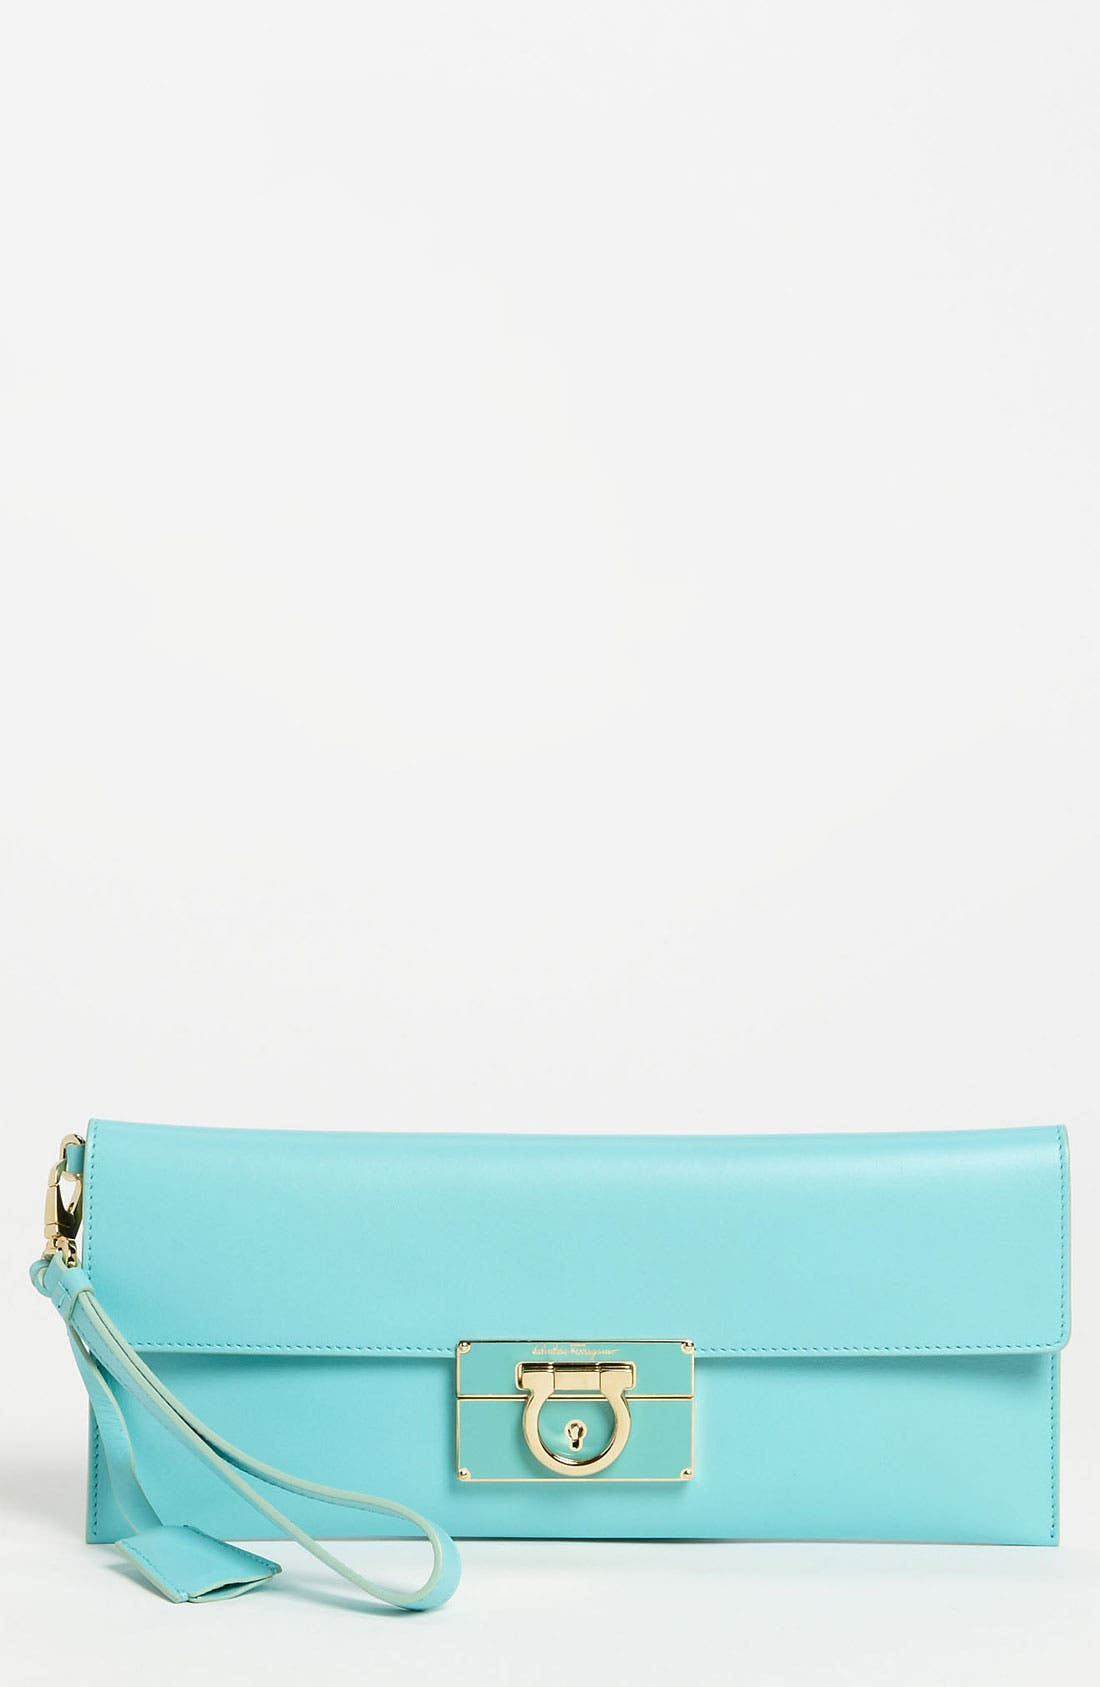 Main Image - Salvatore Ferragamo 'Afef' Leather Envelope Clutch